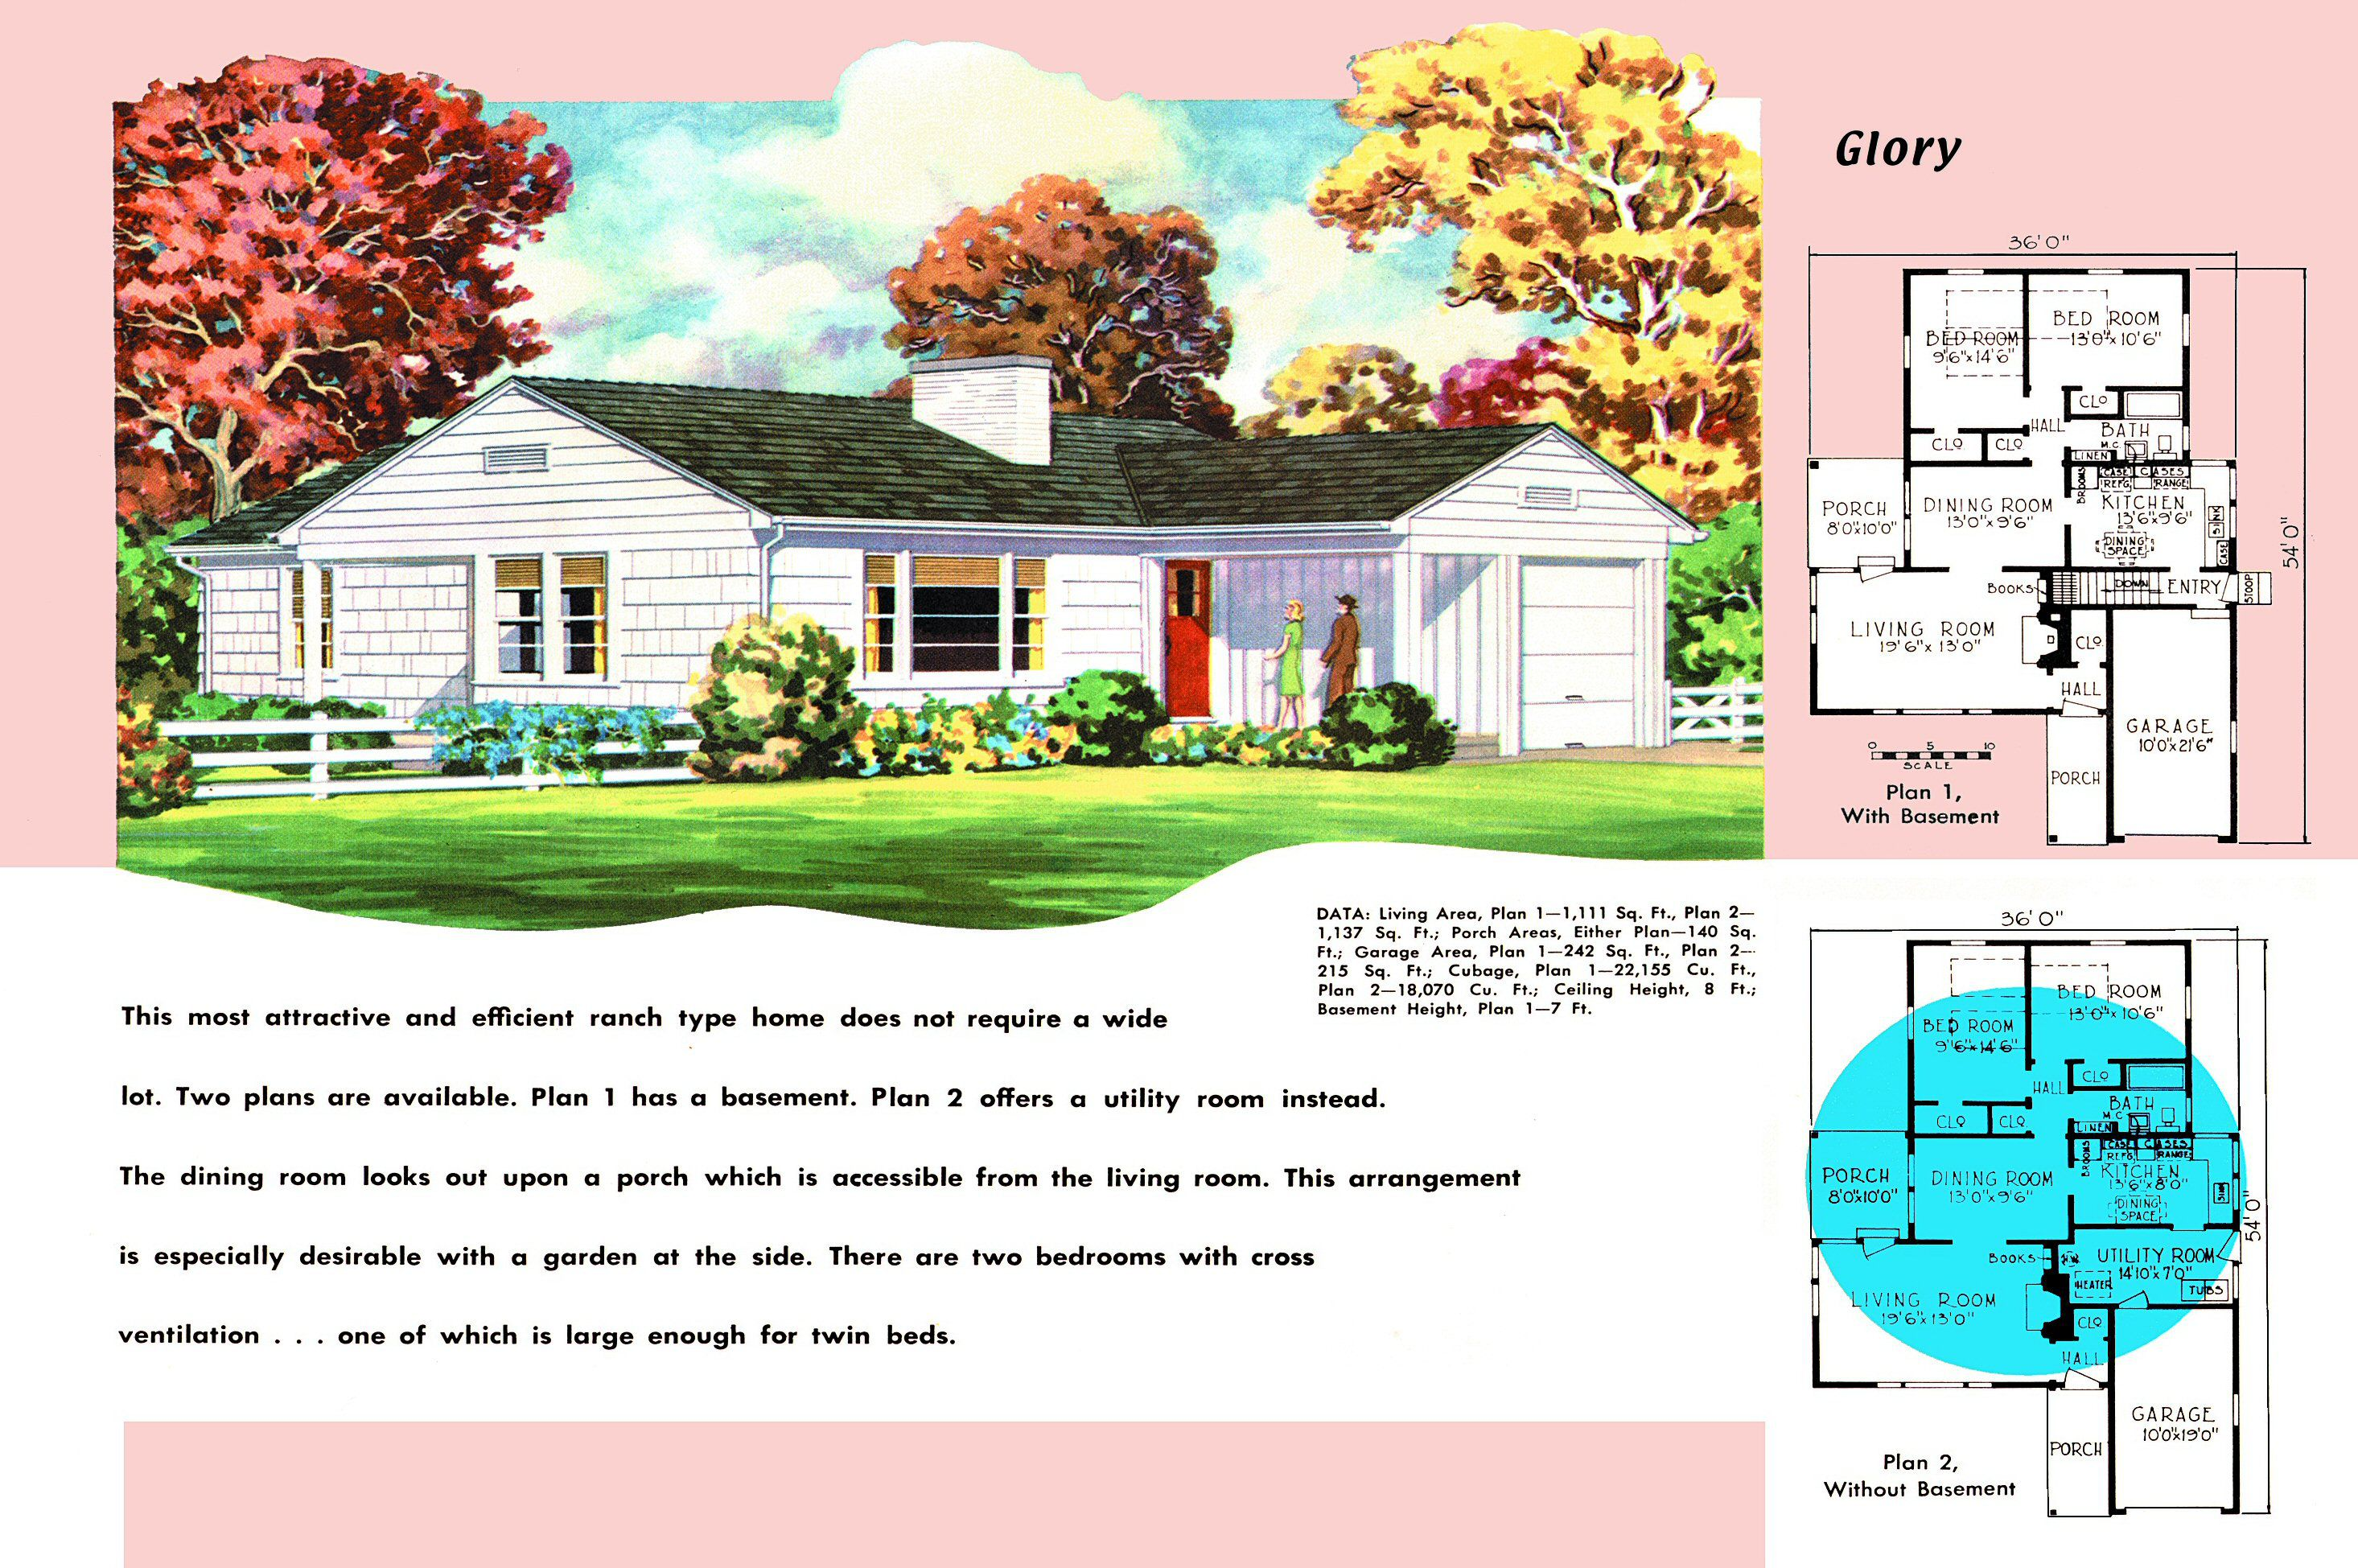 1950s House Plans for Por Ranch Homes on ranch house landscaping, ranch house bathroom, ranch house curb appeal ideas, ranch house flooring, ranch house blueprints, ranch house elevation plans, ranch house plans with porches, ranch house kitchen design, ranch style house plans 2013, ranch house plans awesome, ranch house lighting, ranch house furniture, ranch house interior design, ranch house foundations,